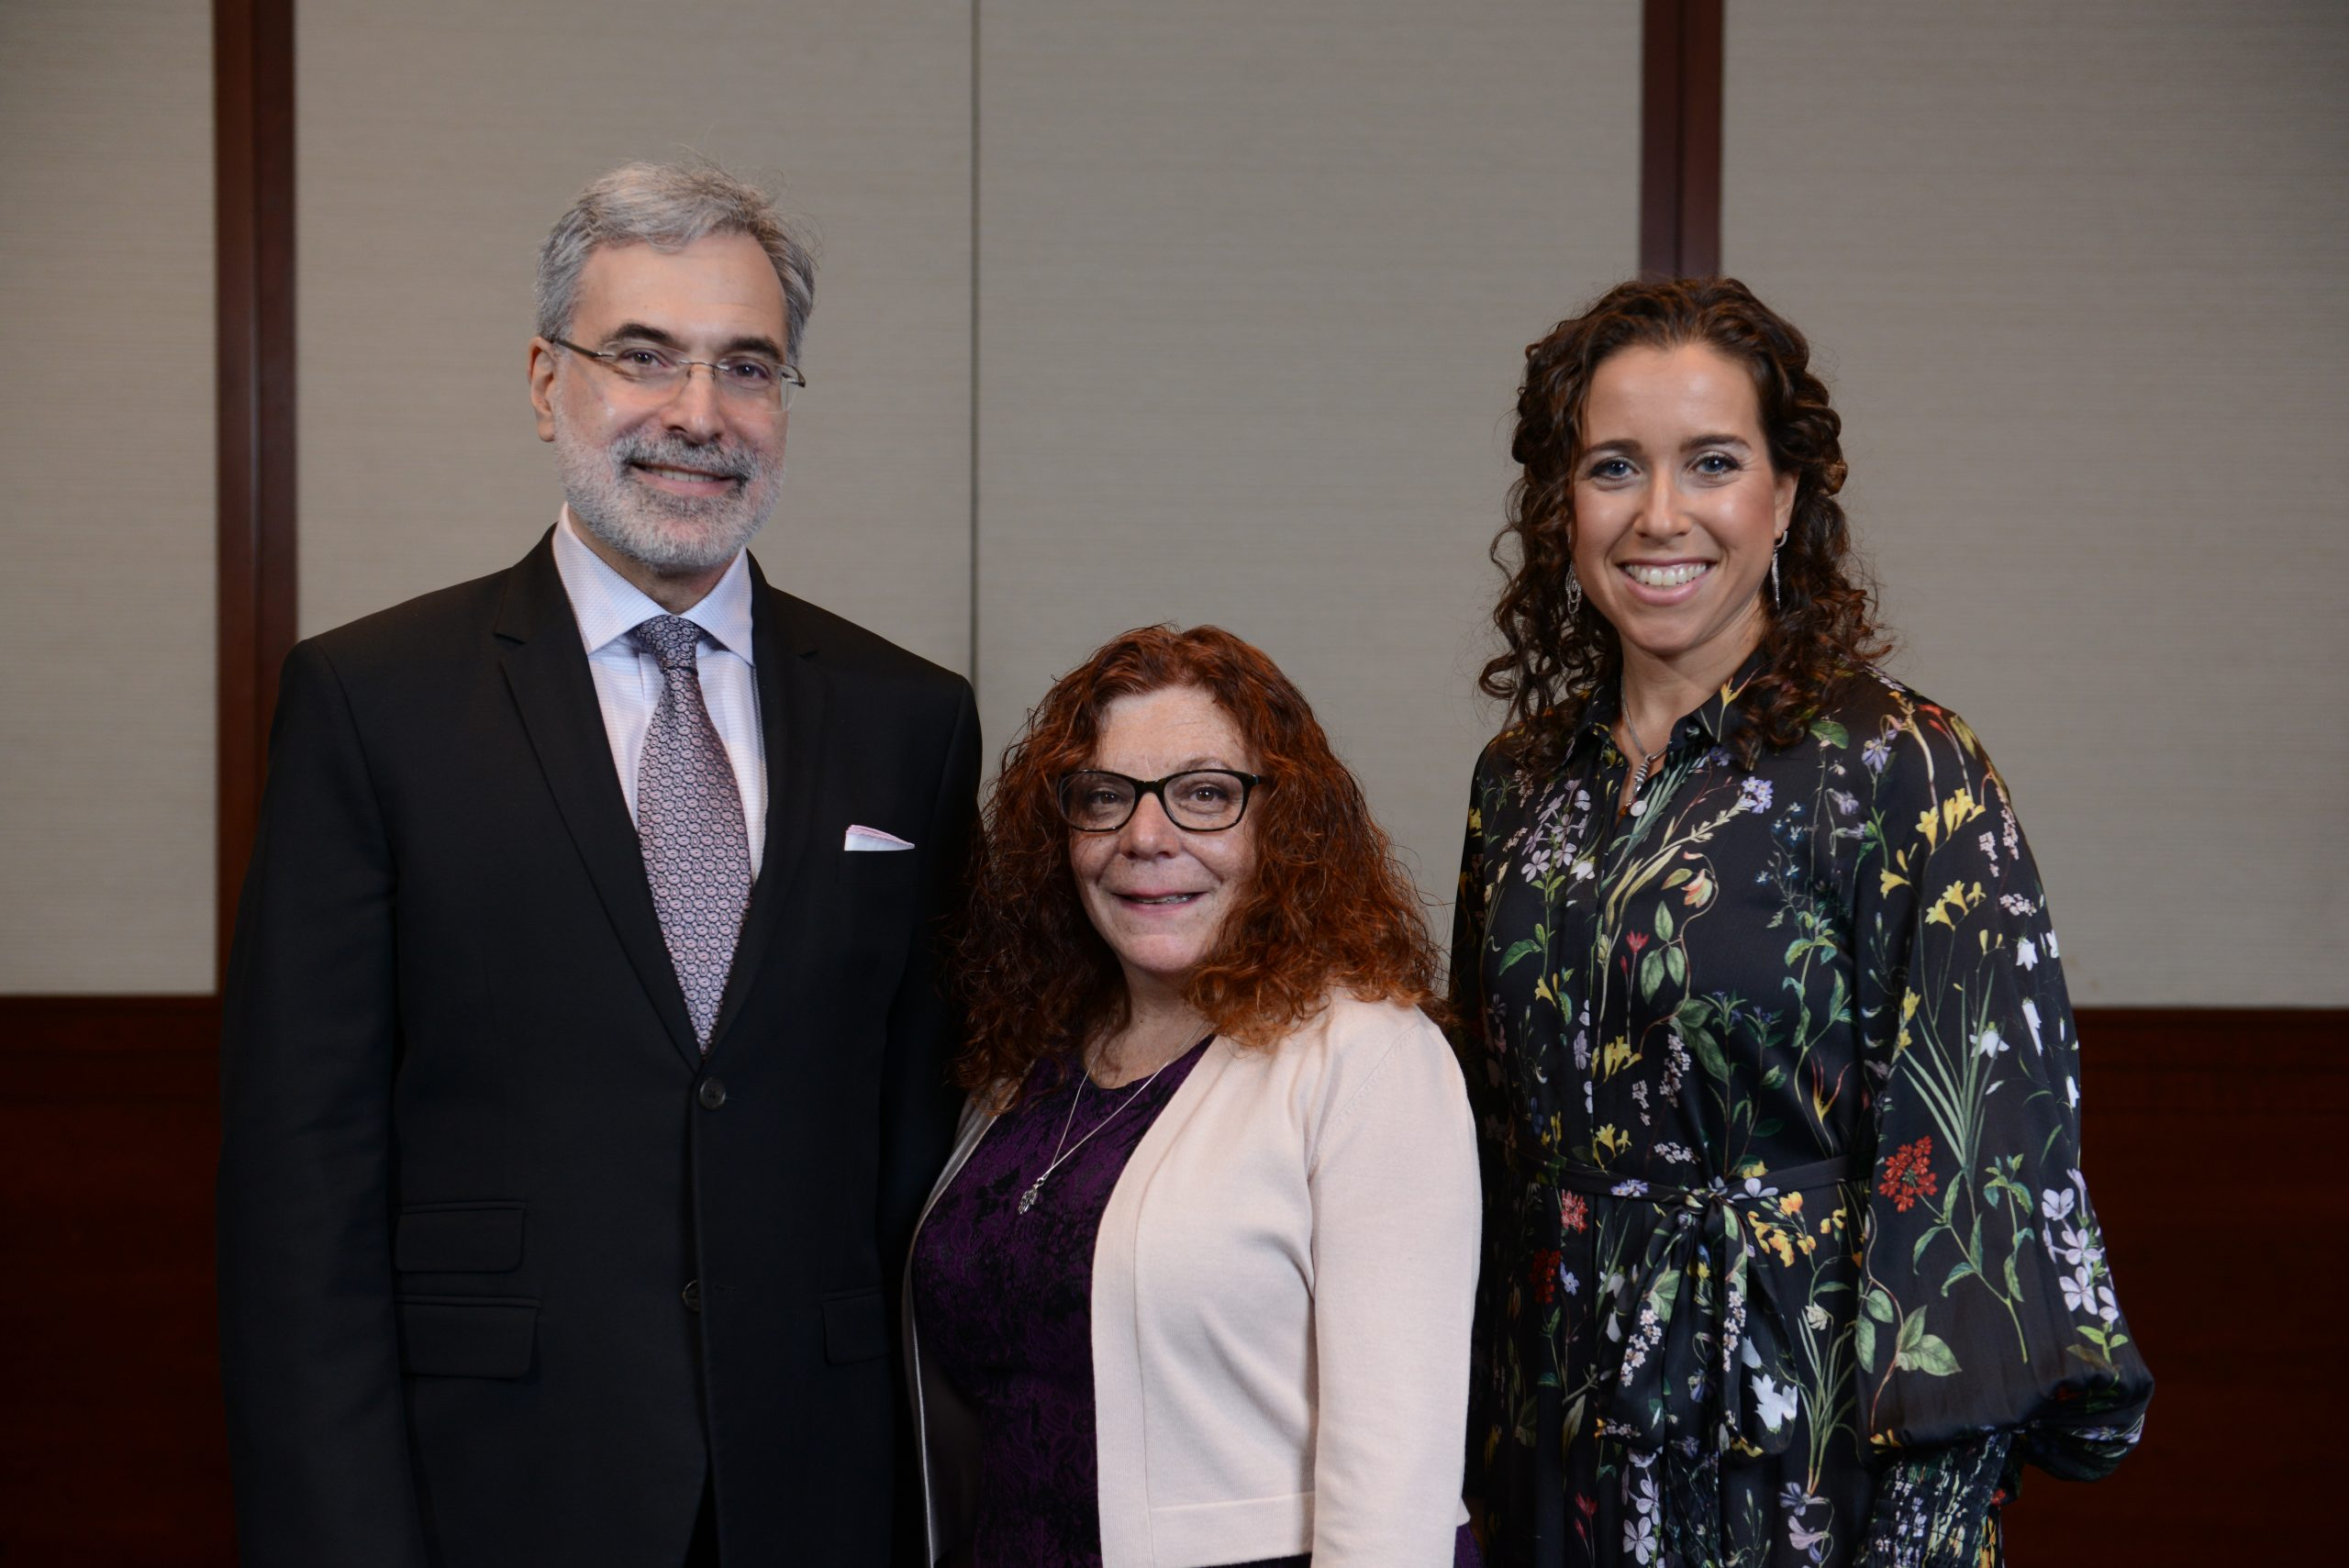 Dr. Gregory Beiles, Sally Grazi-Shatzkes and Risa Strauss Receive the 2019 Covenant Award at Annual Ceremony in New York